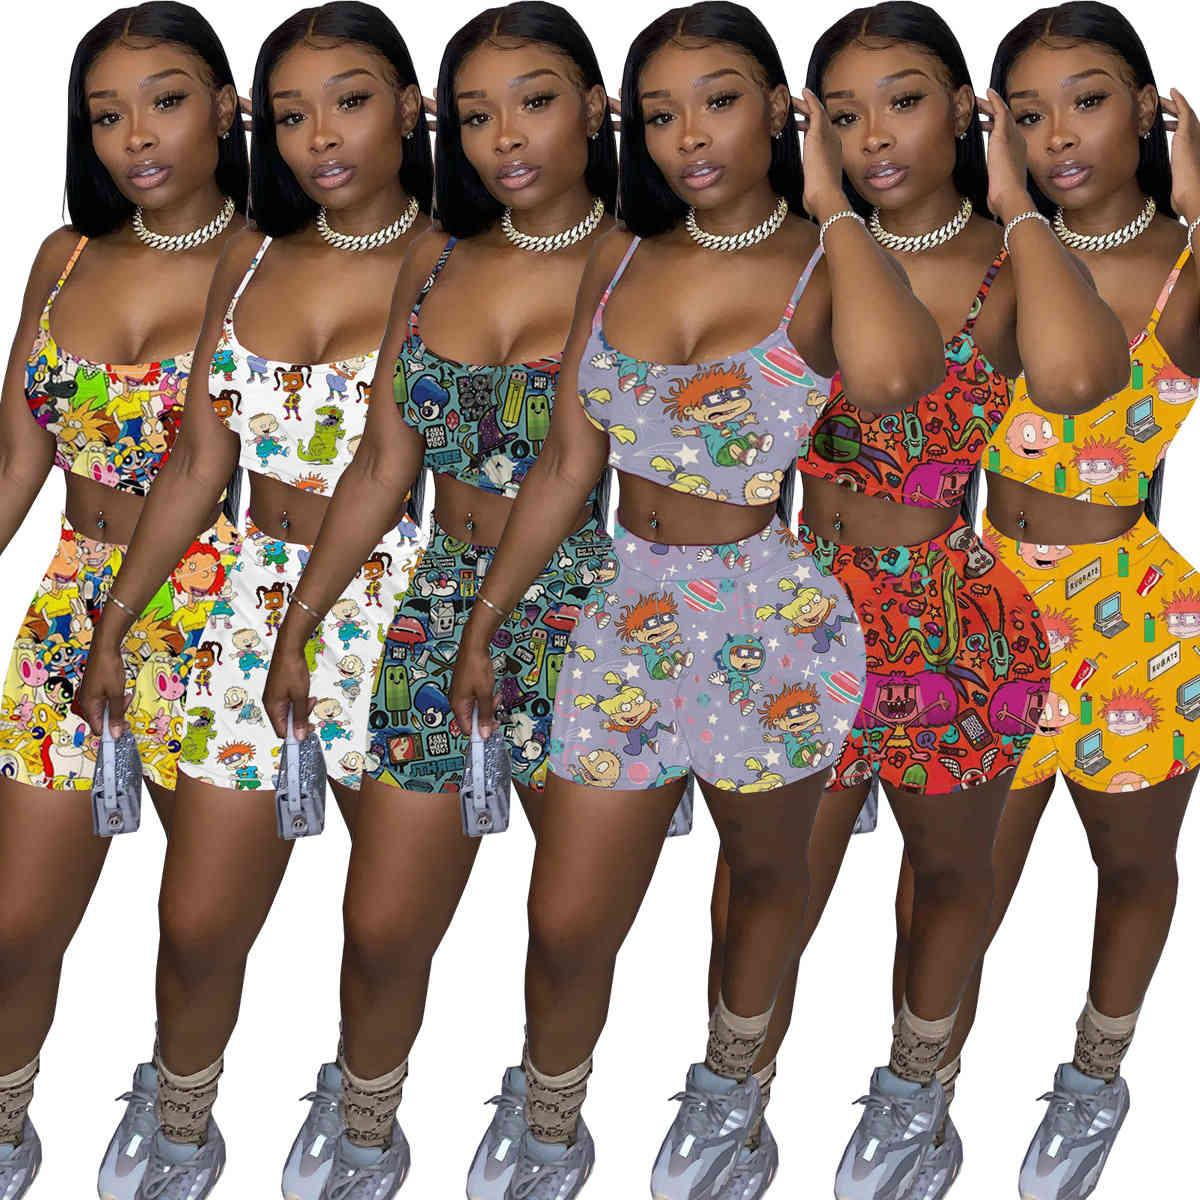 Summer Women Tracksuits Sexy Shorts 2 Two Piece Pants Set Cartoon Printed Outfits Lady Jogger Suits Suspender Top Plus Size Clothing 849